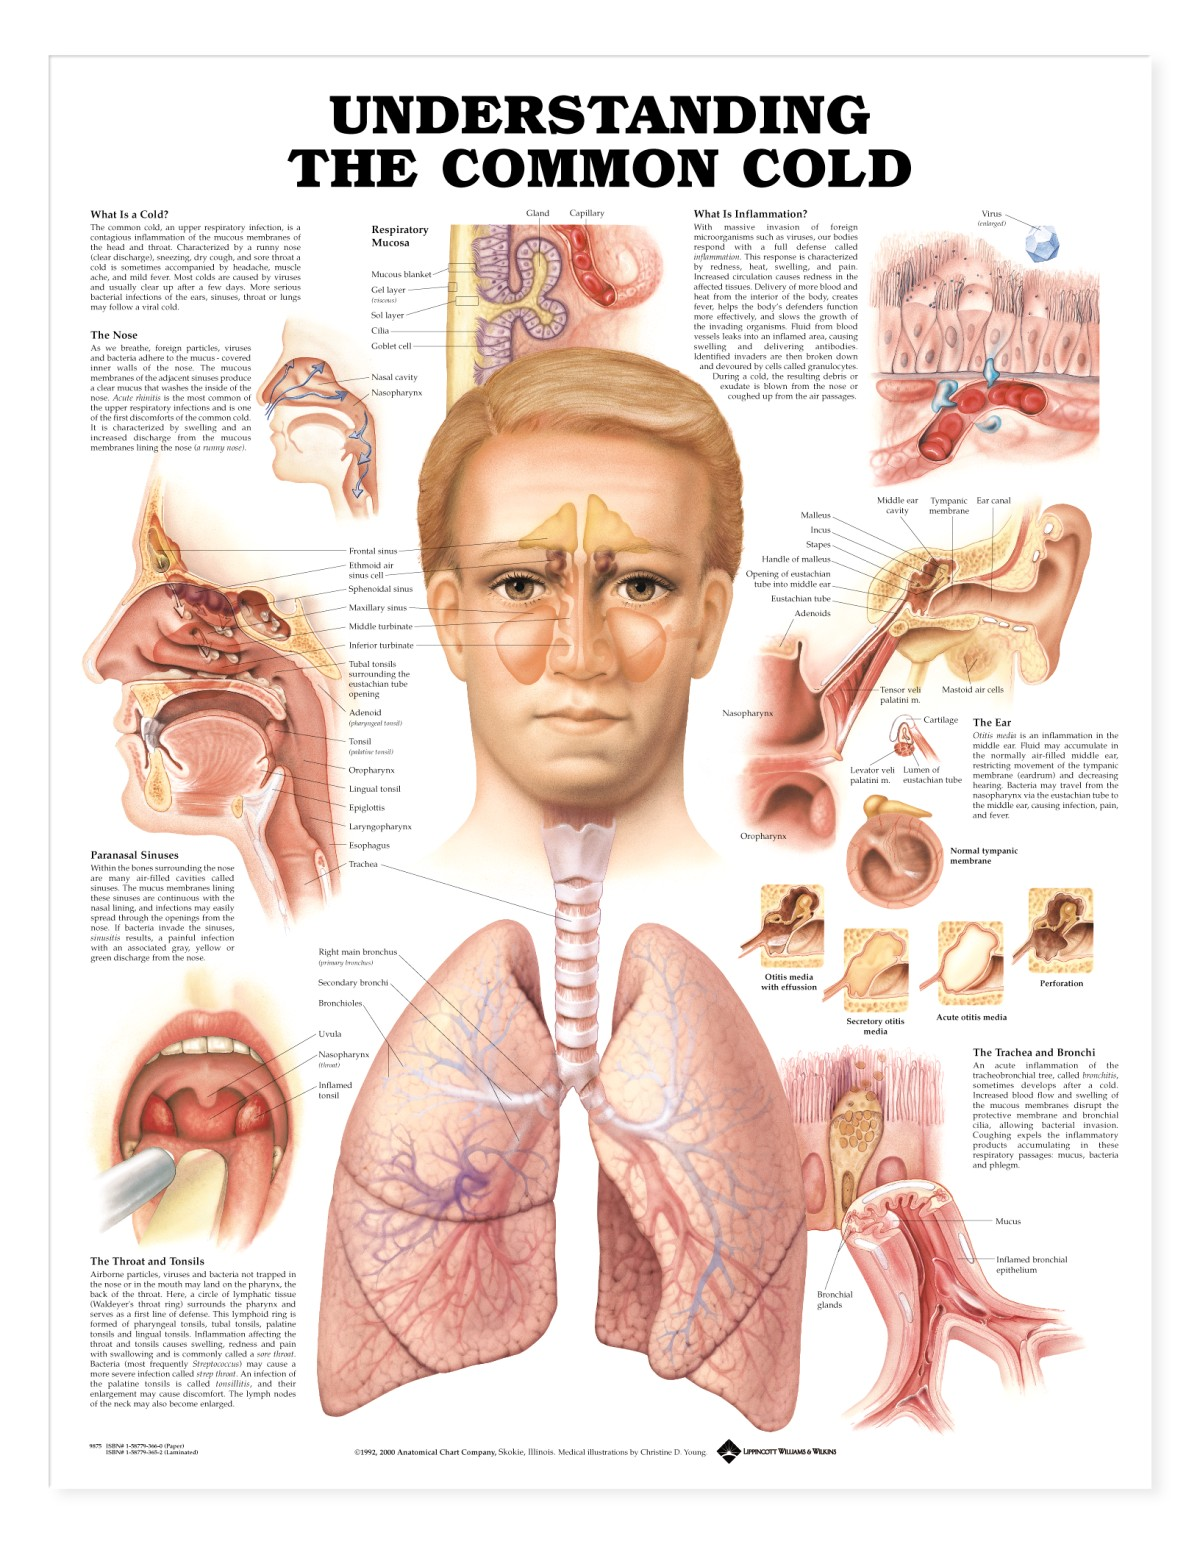 The Common Cold